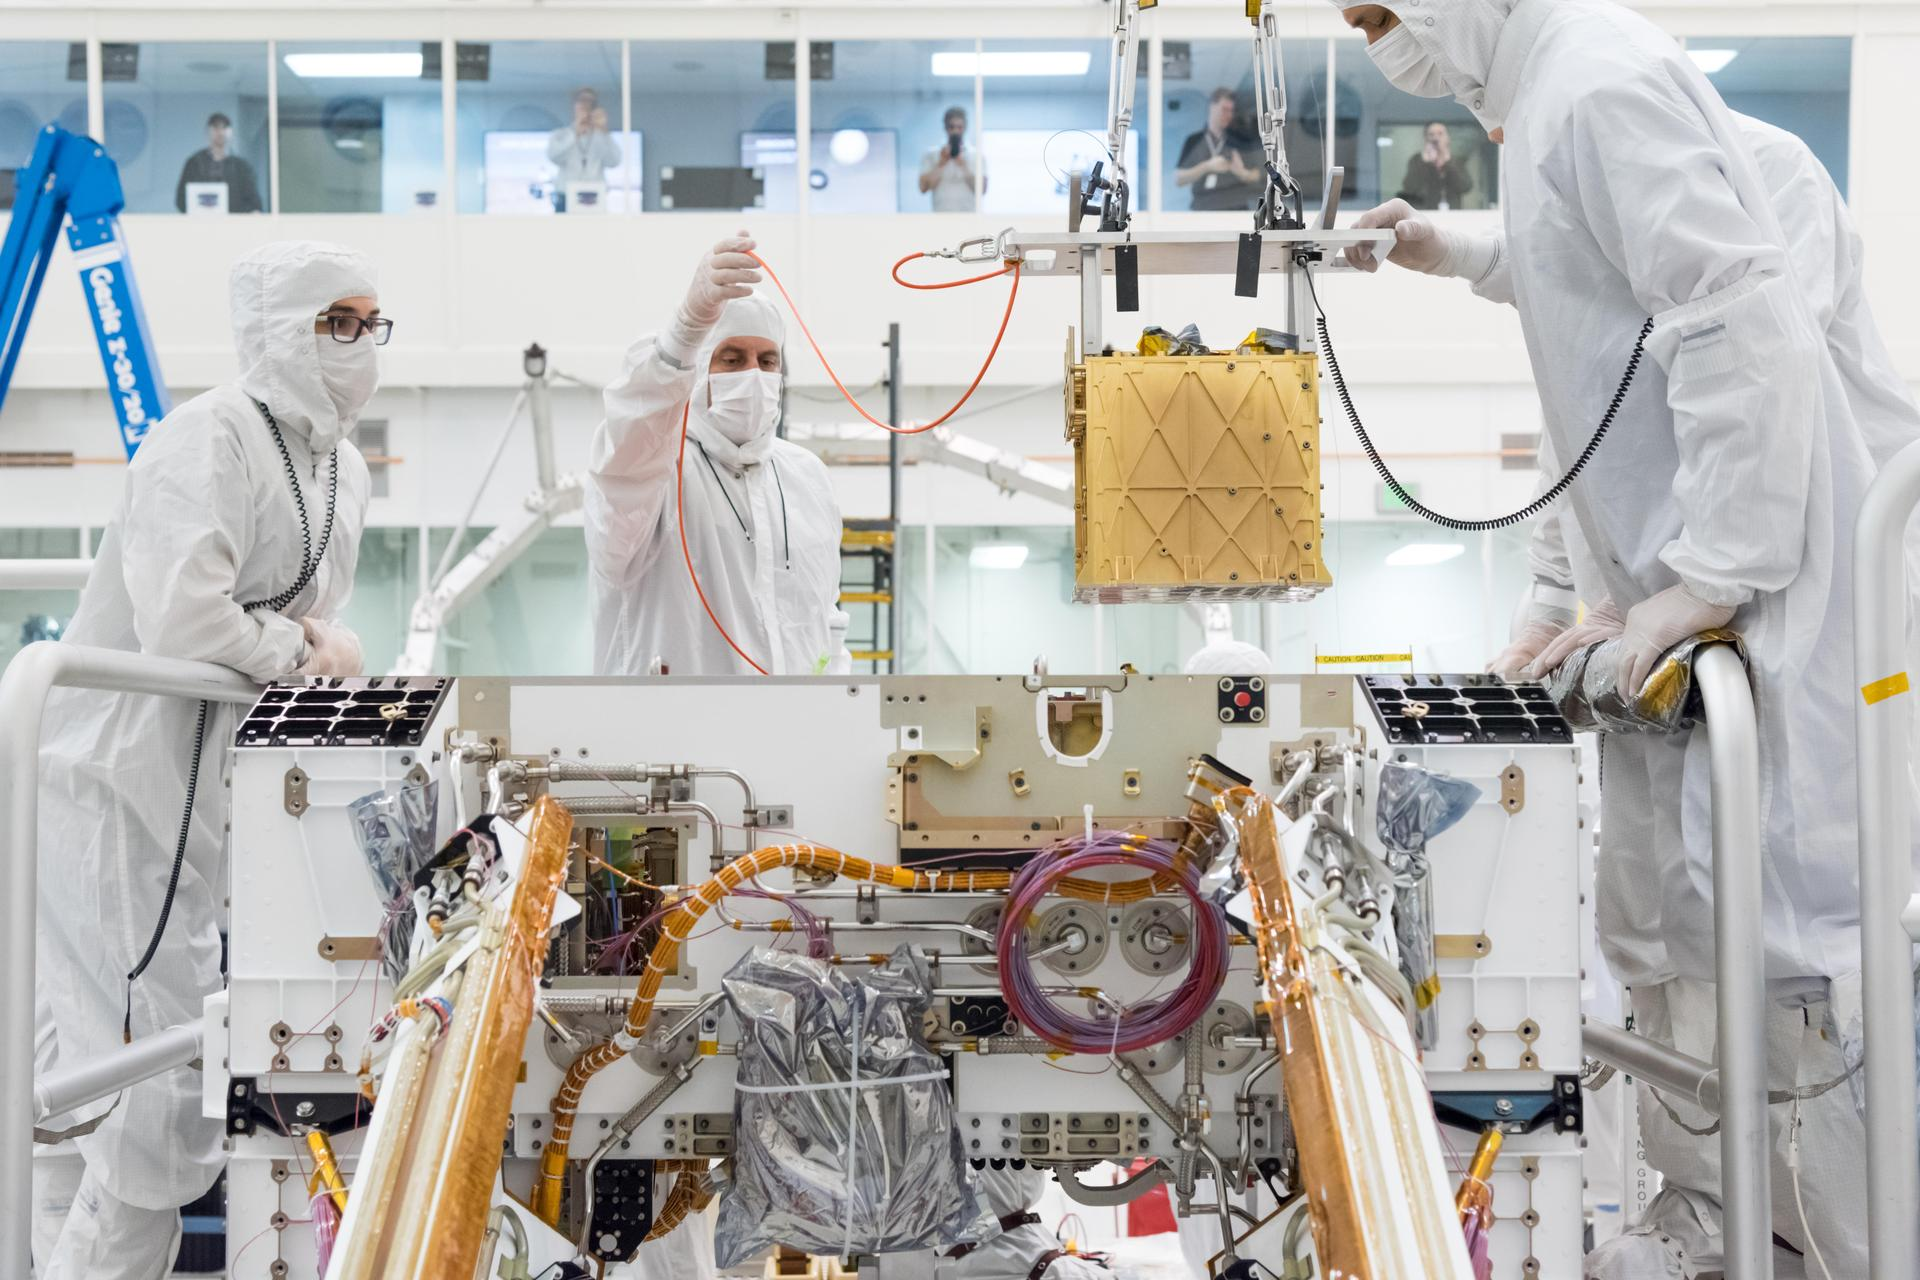 Members of NASA's Mars 2020 project install the Mars Oxygen In-Situ Resource Utilization Experiment (MOXIE) into the chassis of NASA's next Mars rover.